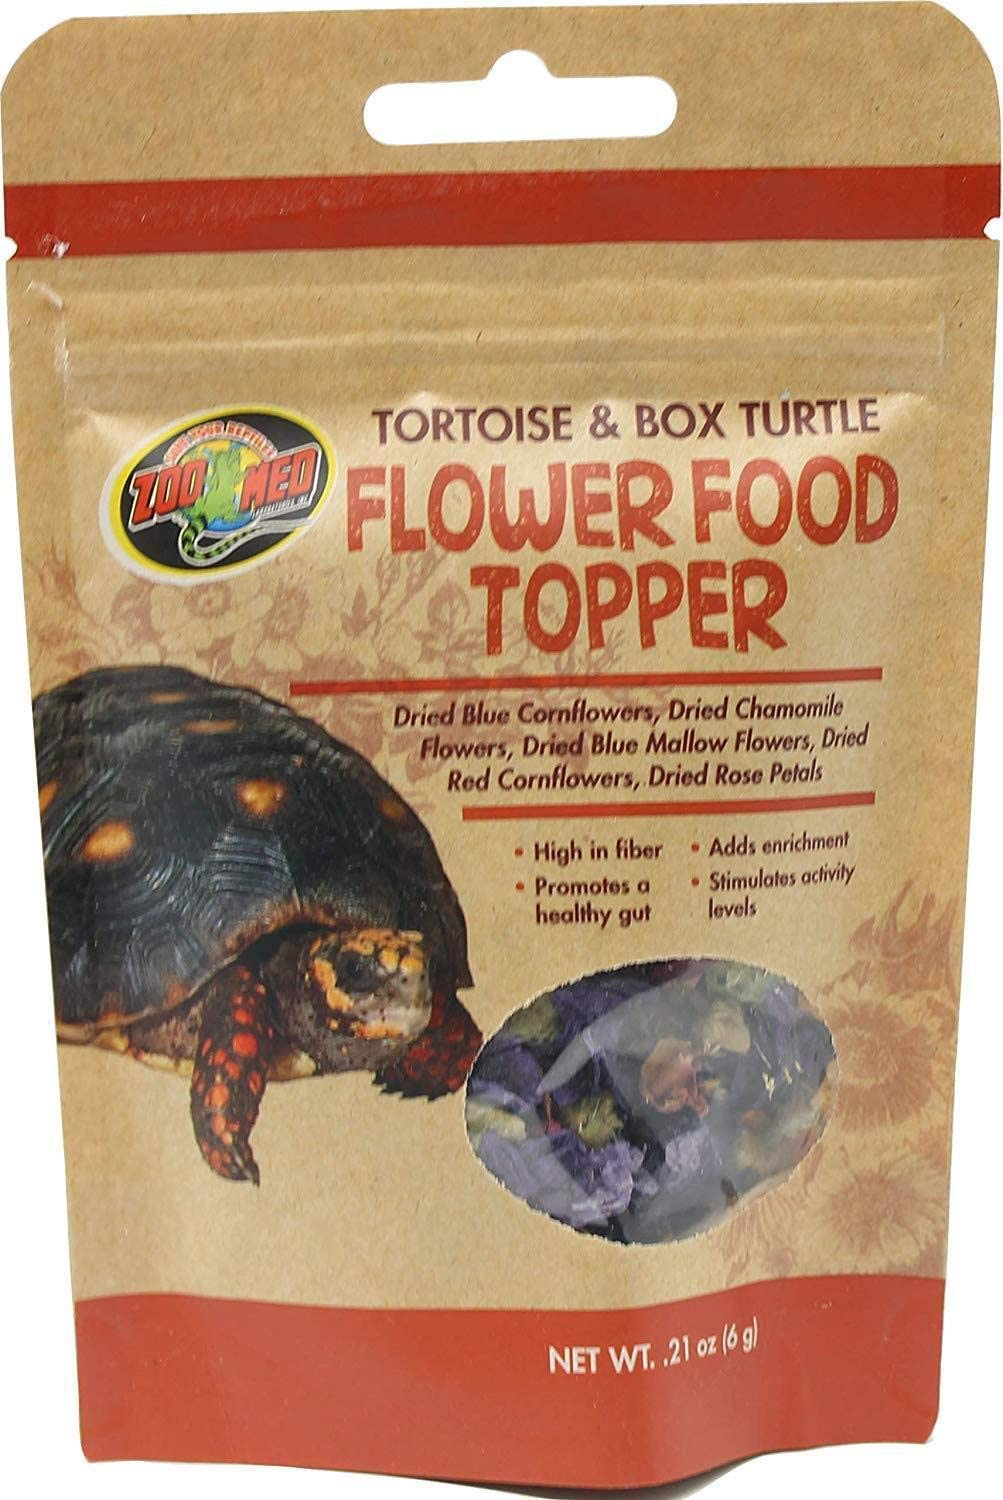 Zoo Med 690723 Tortoise & Box Turtle Flower Food Topper, 0.21 oz, Assorted